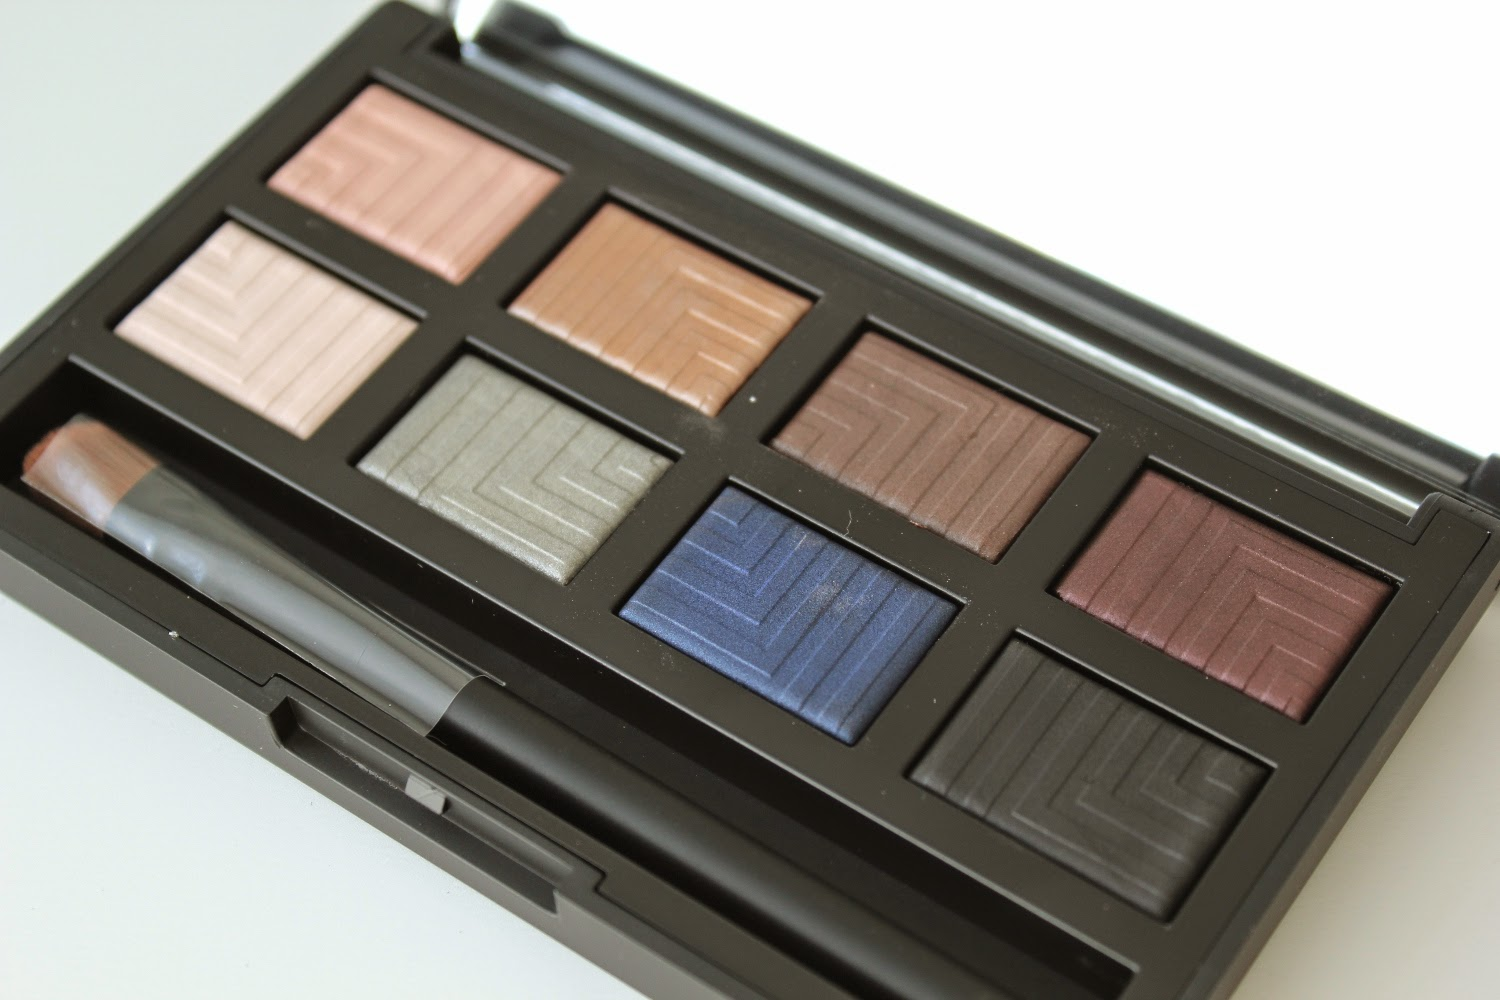 http://chroniquedunemakeupaddict.blogspot.com/2015/02/makeup-avec-la-palette-dual-intensity.html